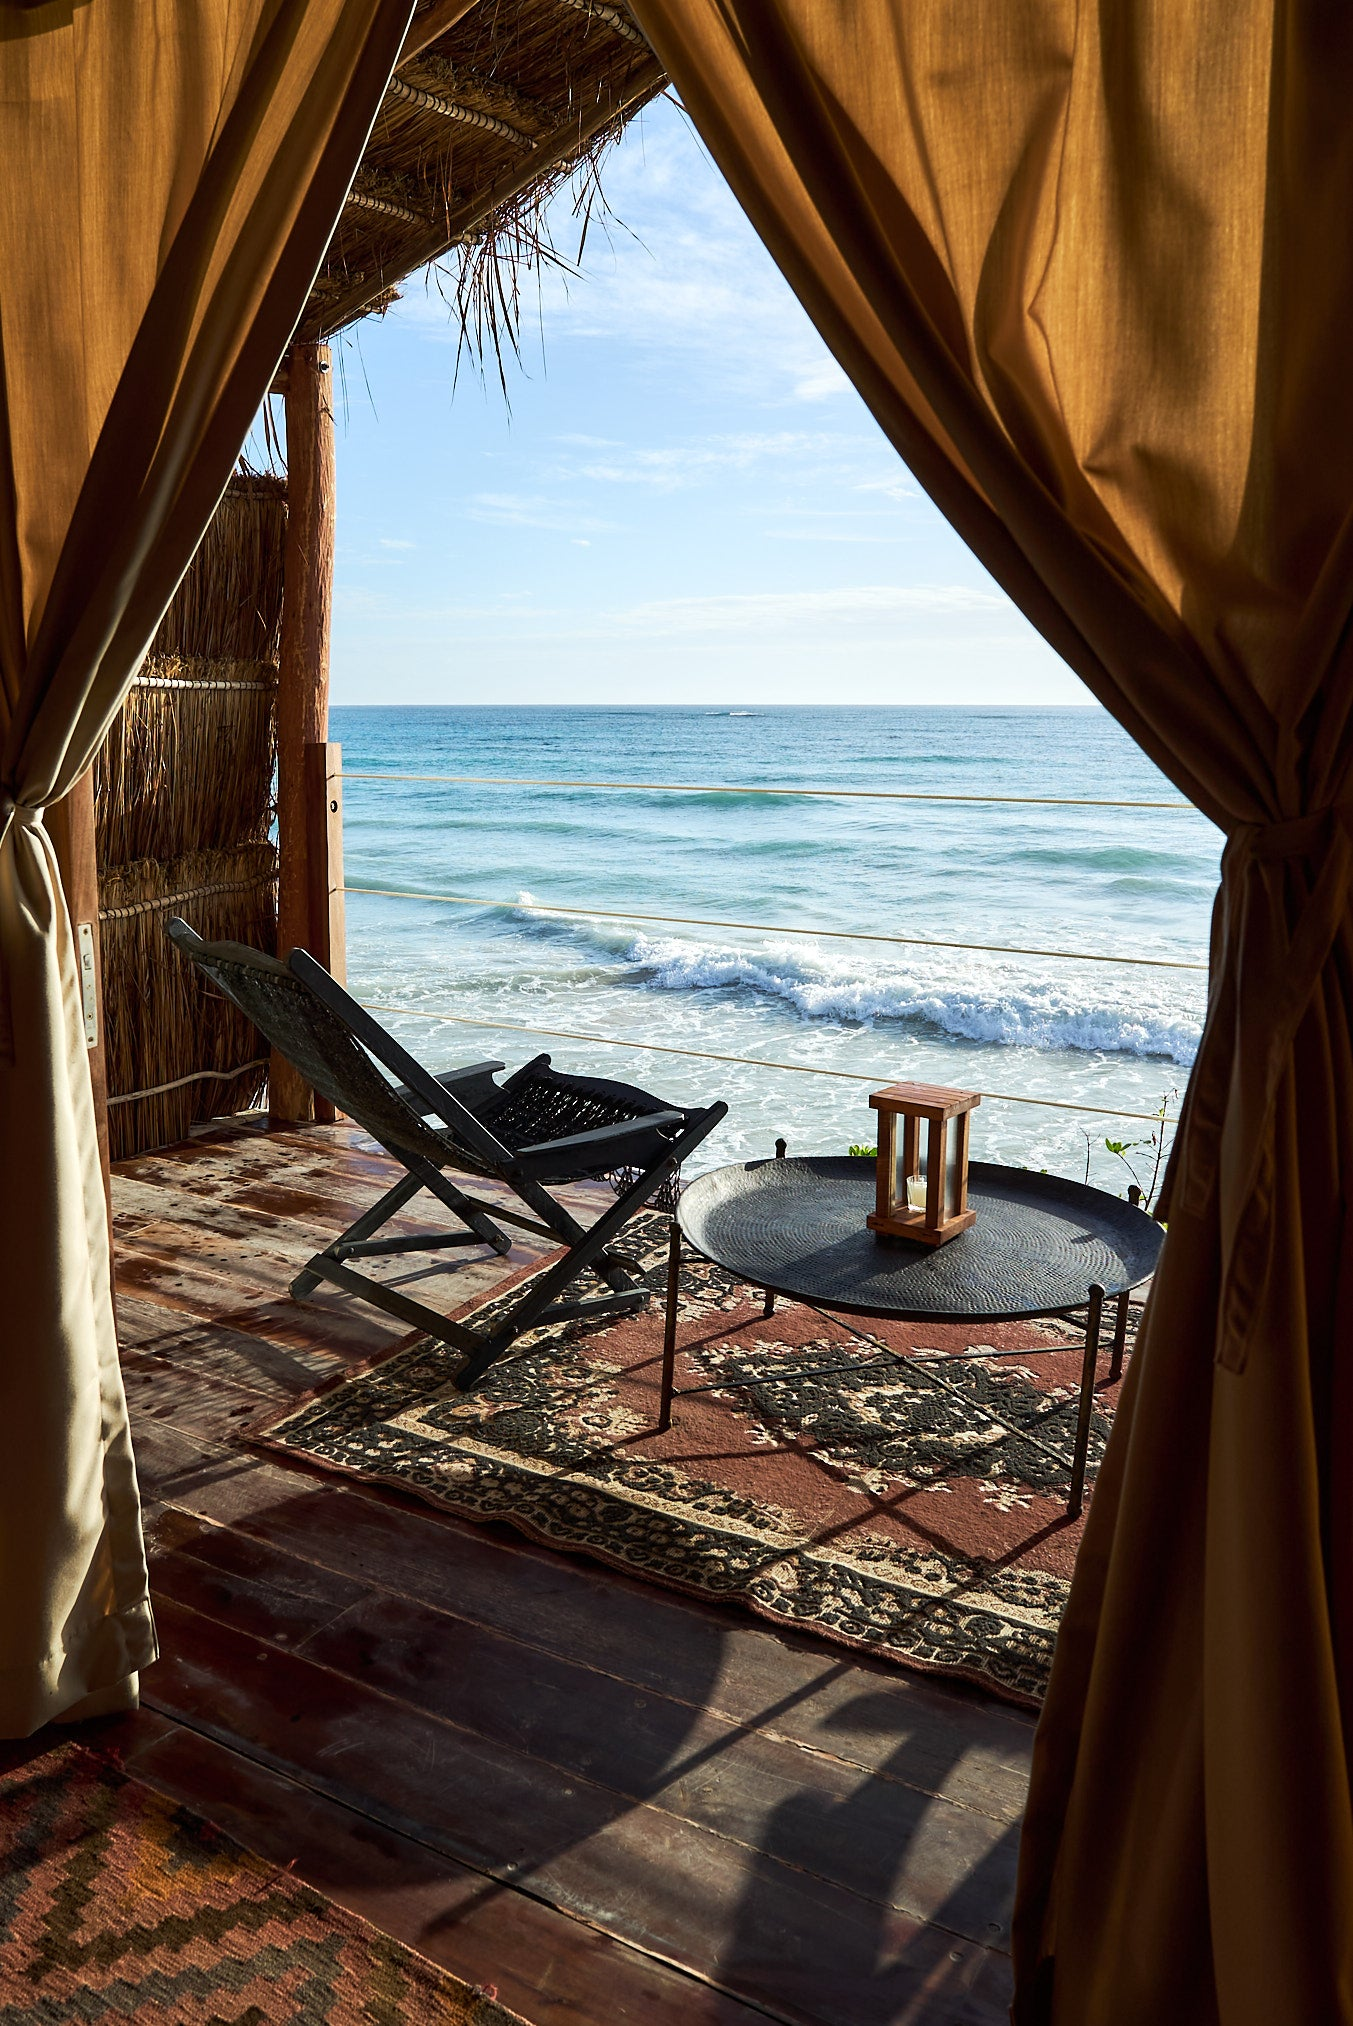 Habitas, Tulum - rustic bungalow patio over blue ocean with intricate rugs and deck chairs